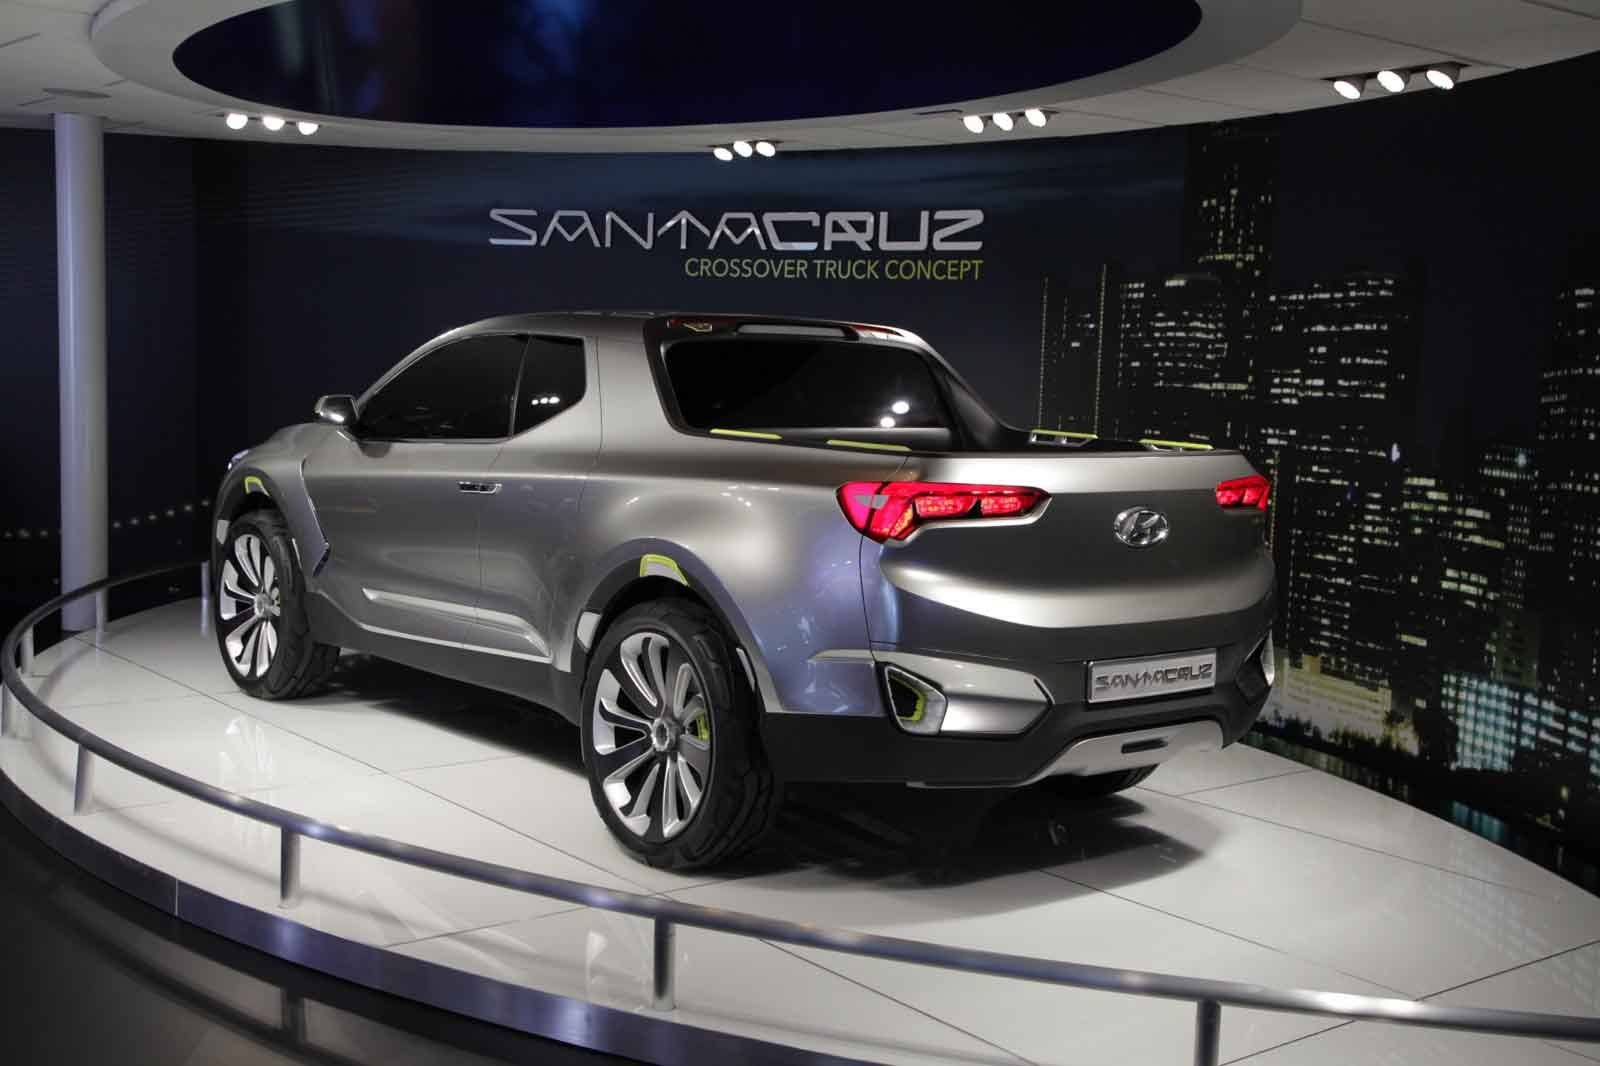 2015 hyundai santa cruz crossover truck concept picture 611033 truck review top speed. Black Bedroom Furniture Sets. Home Design Ideas